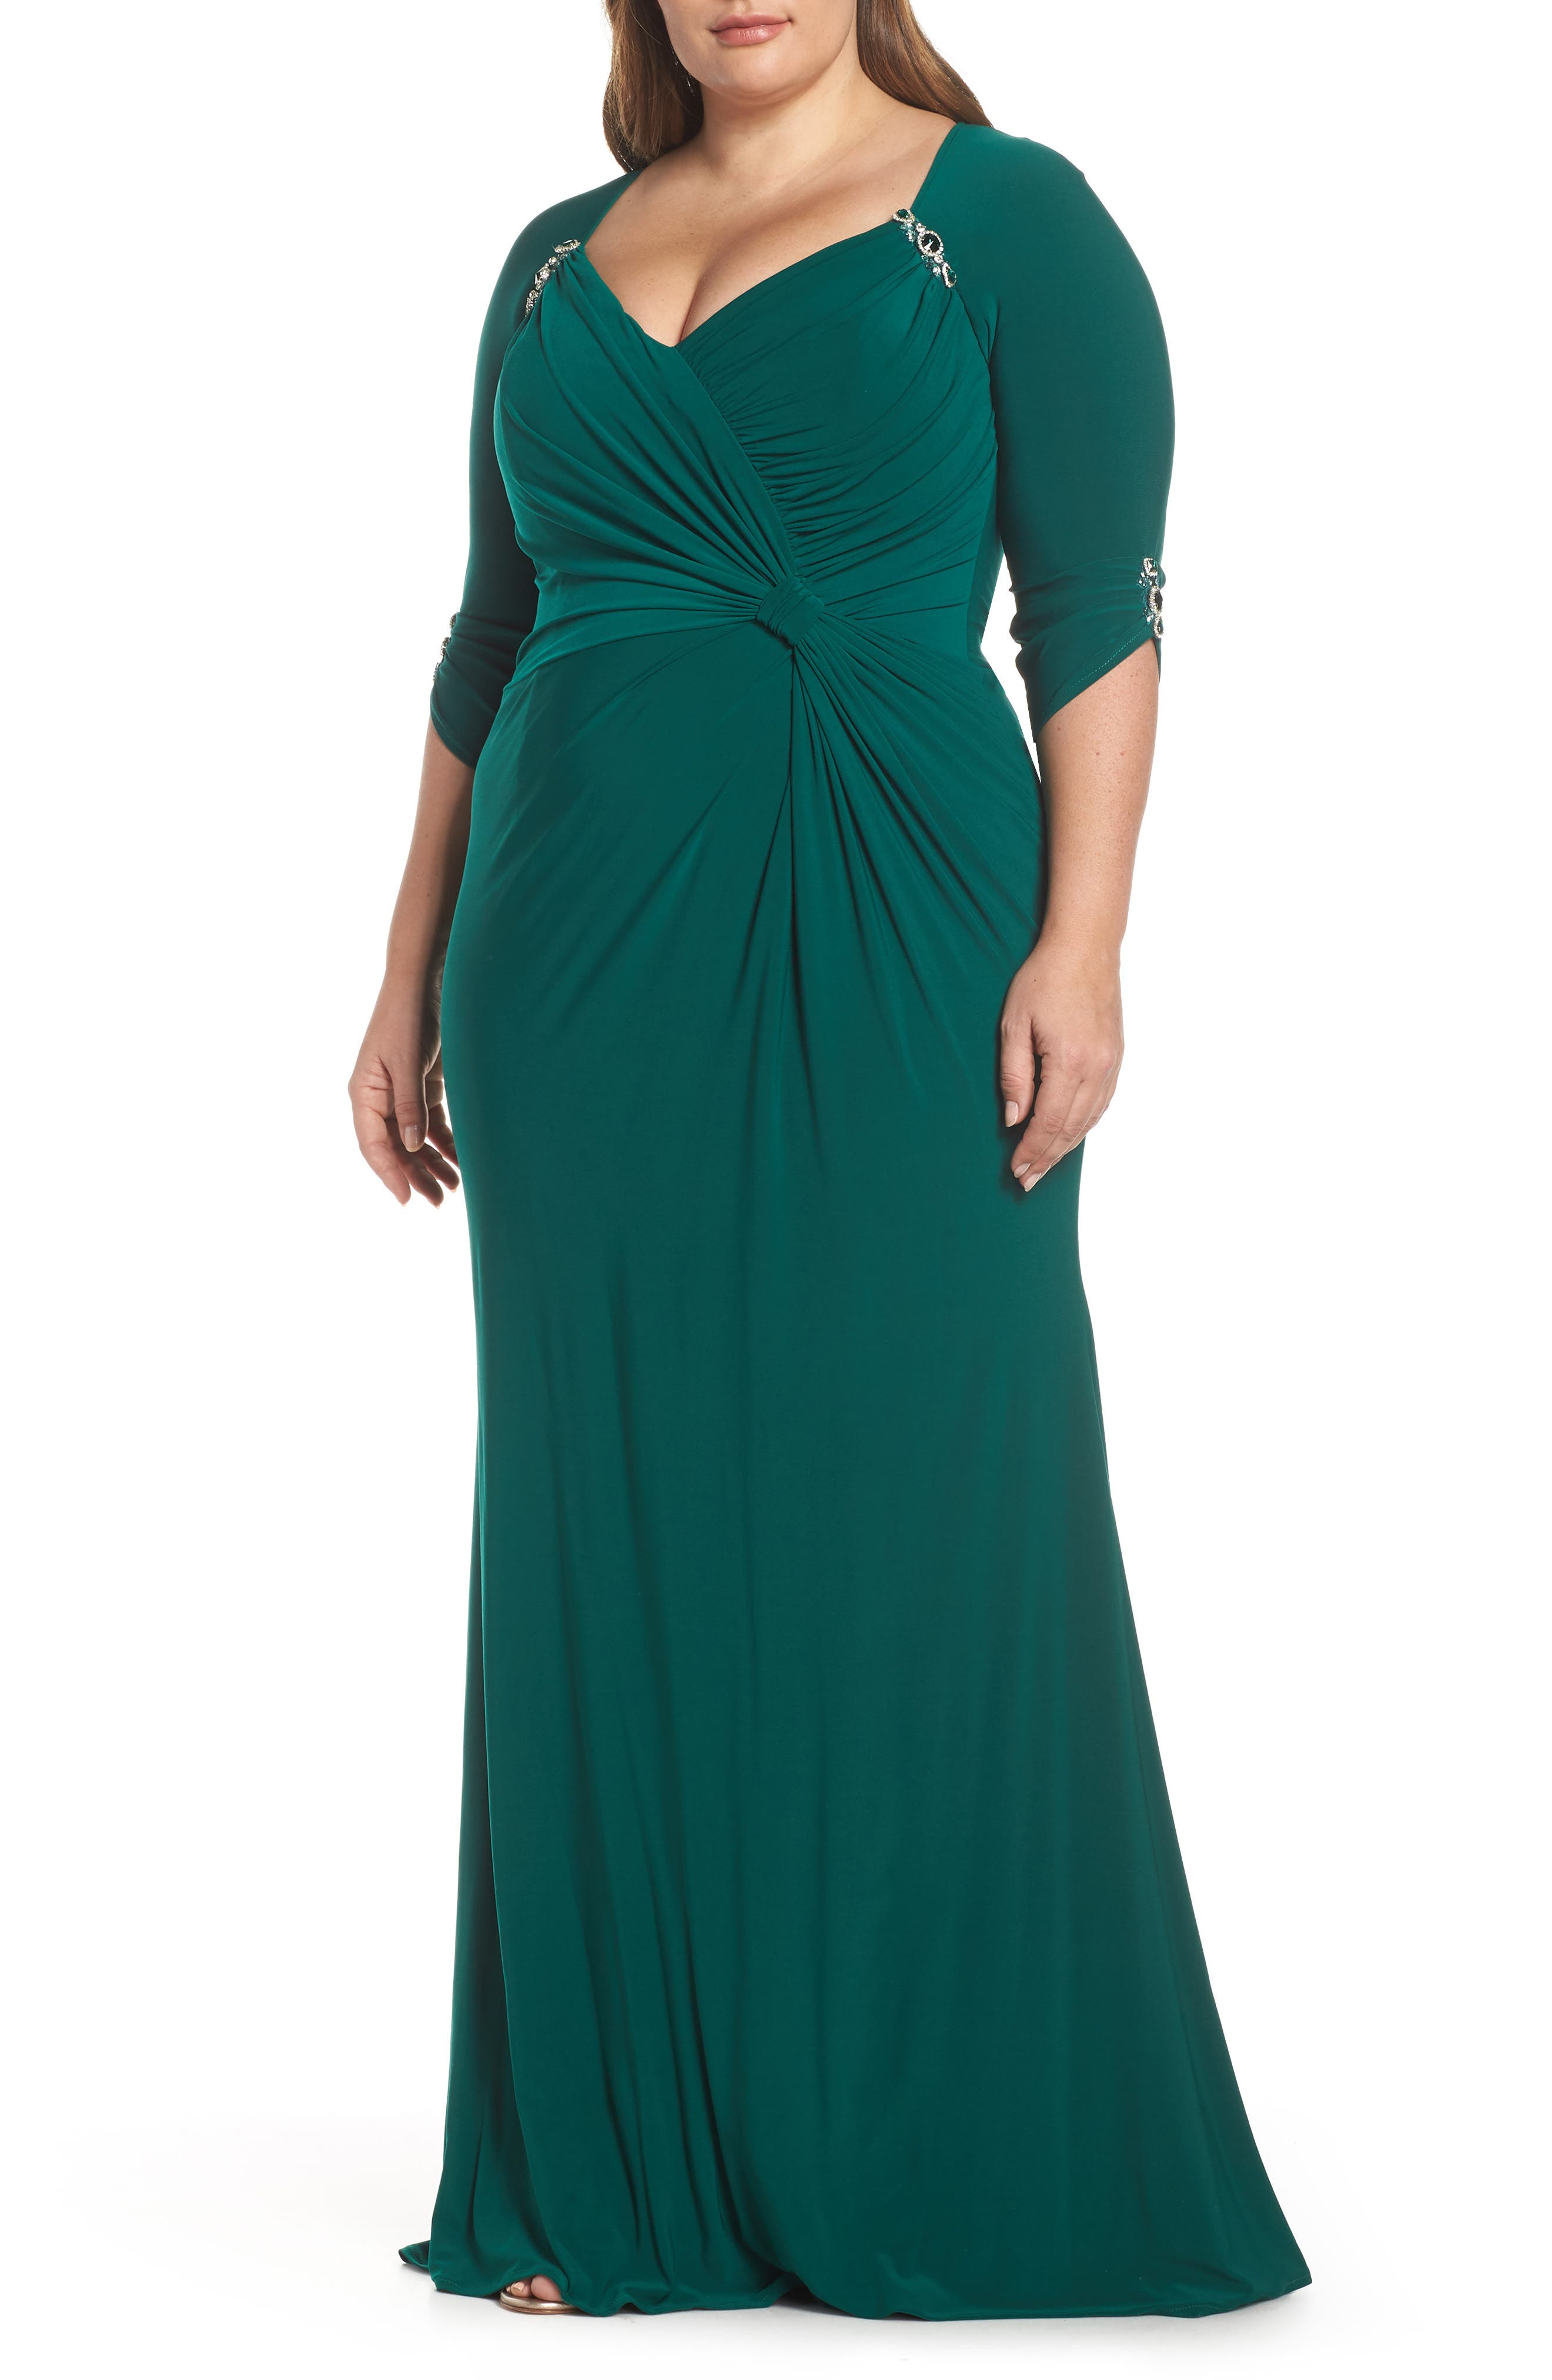 Plus Size MAC Duggal Crystal Embellished Twist Front Evening Dress, Green